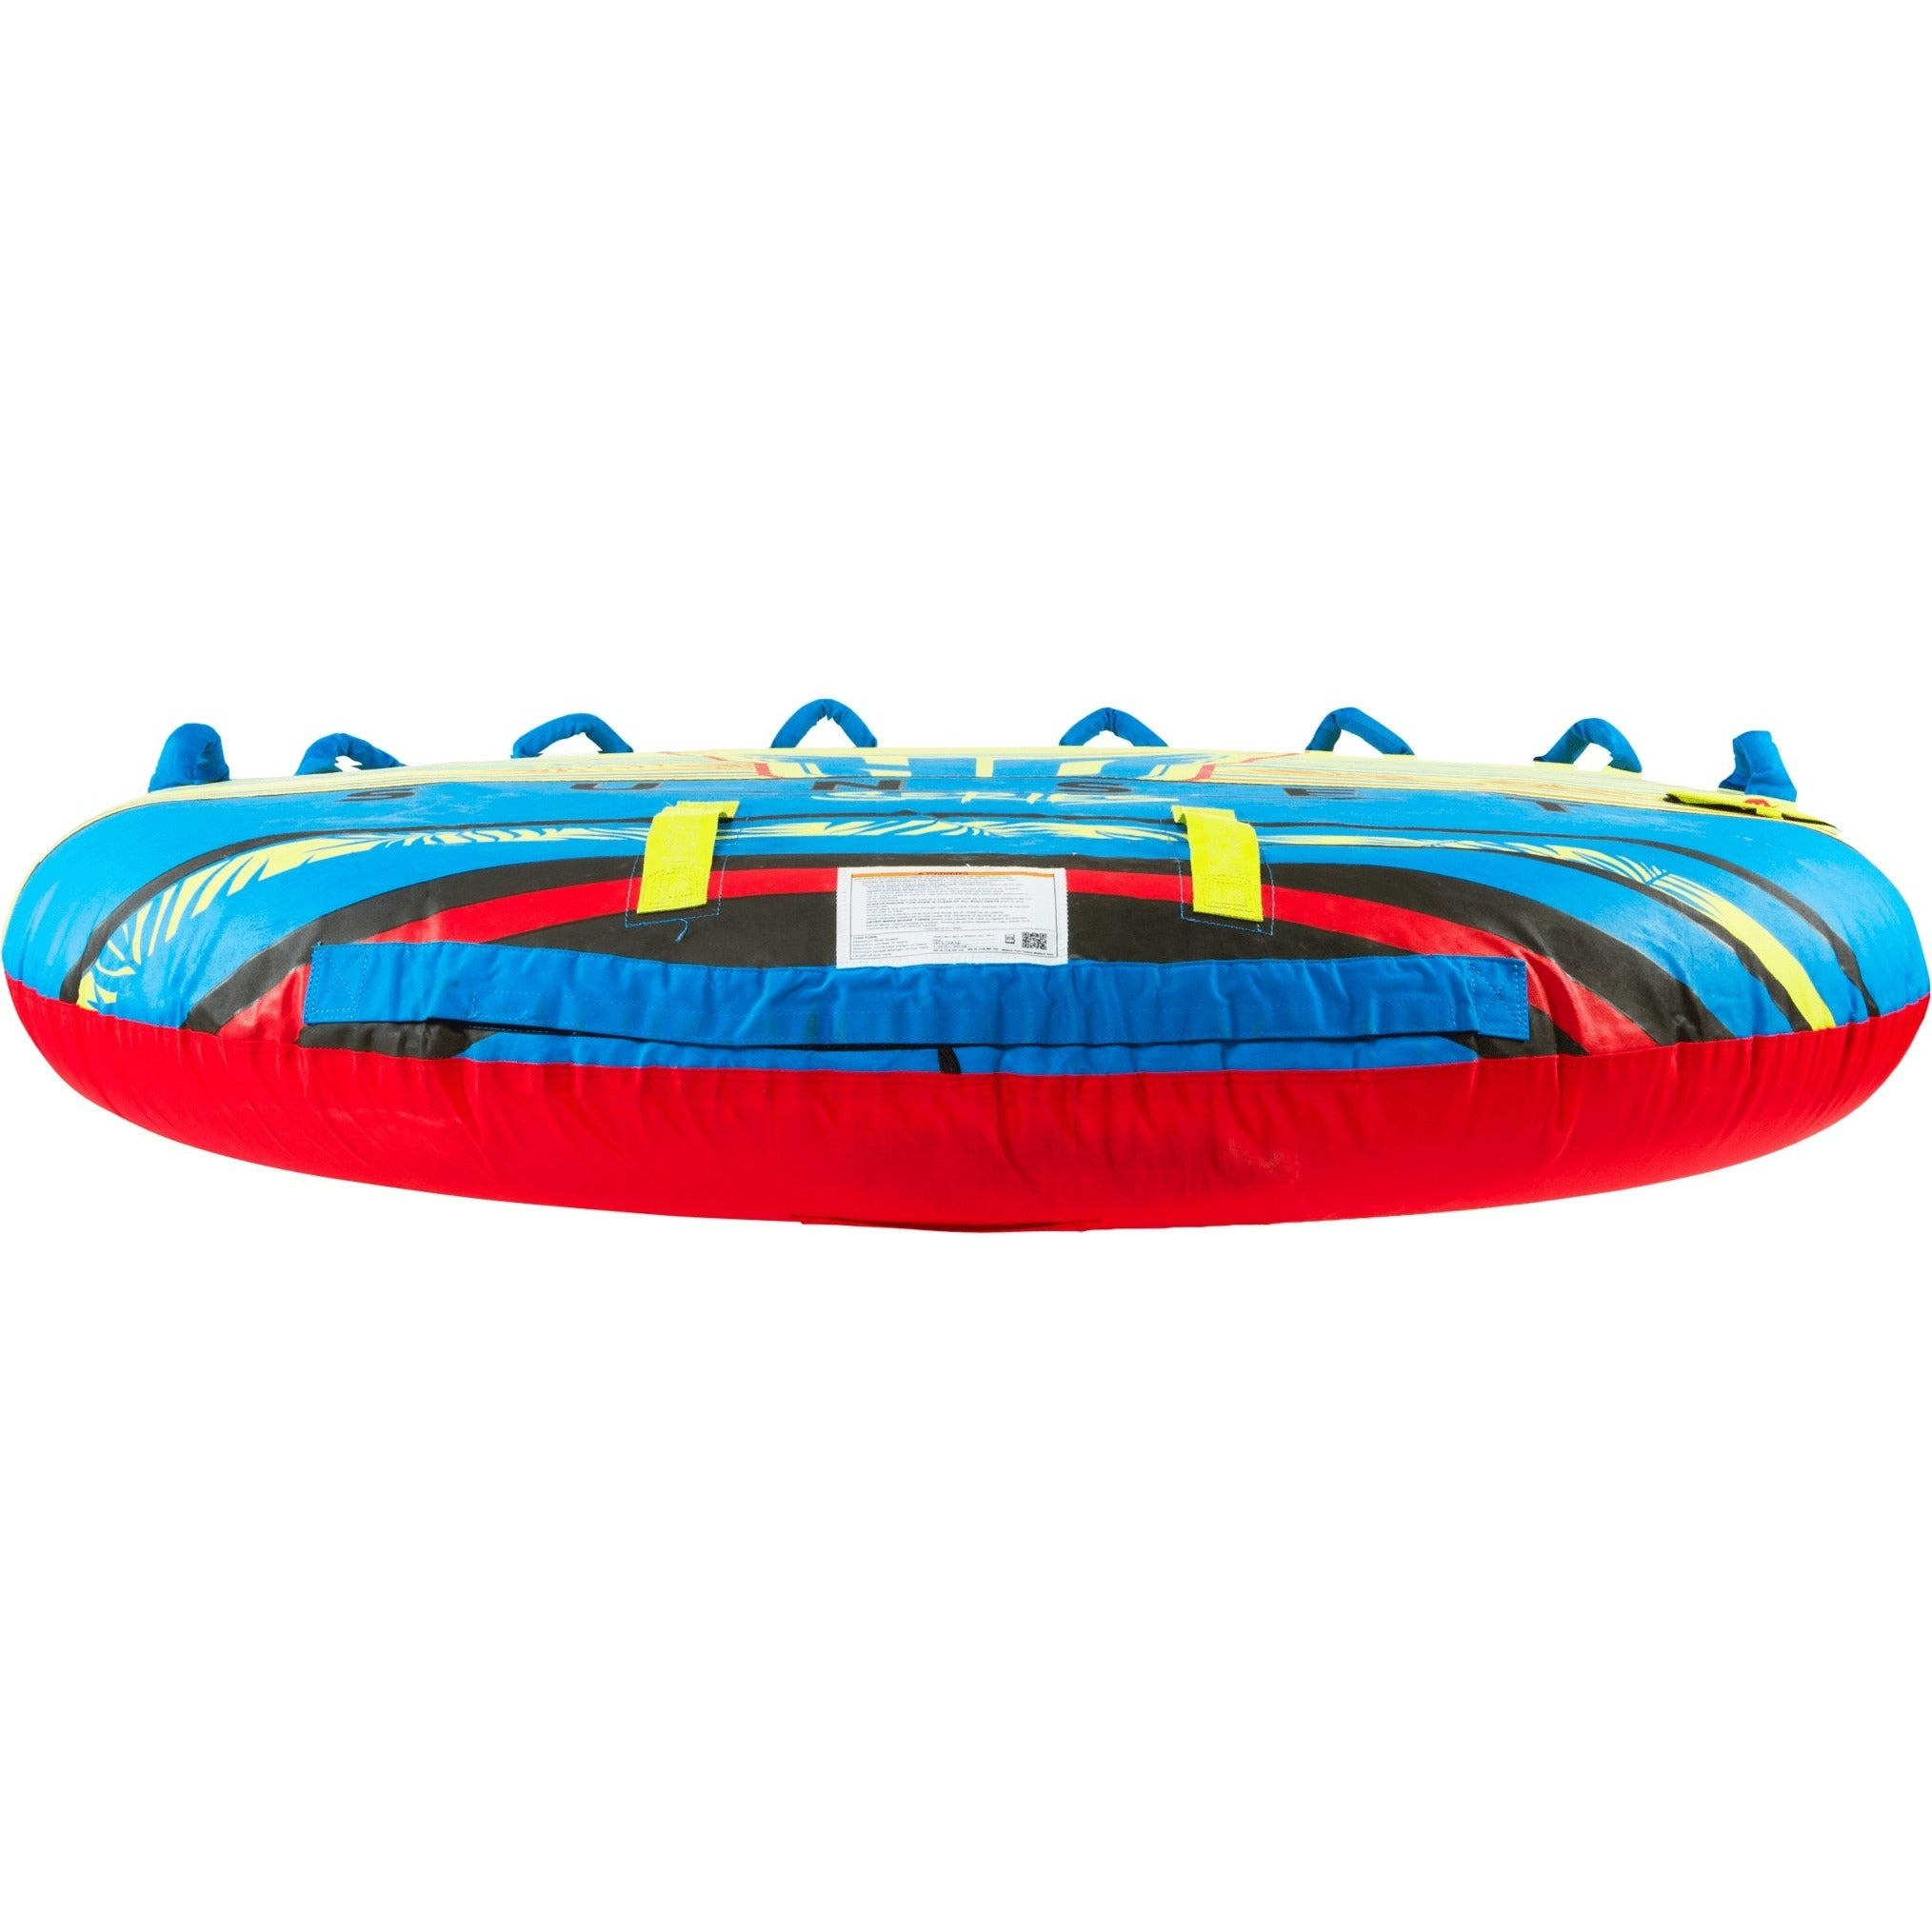 HO Sunset 4 Person Towable Tube - 88 Gear